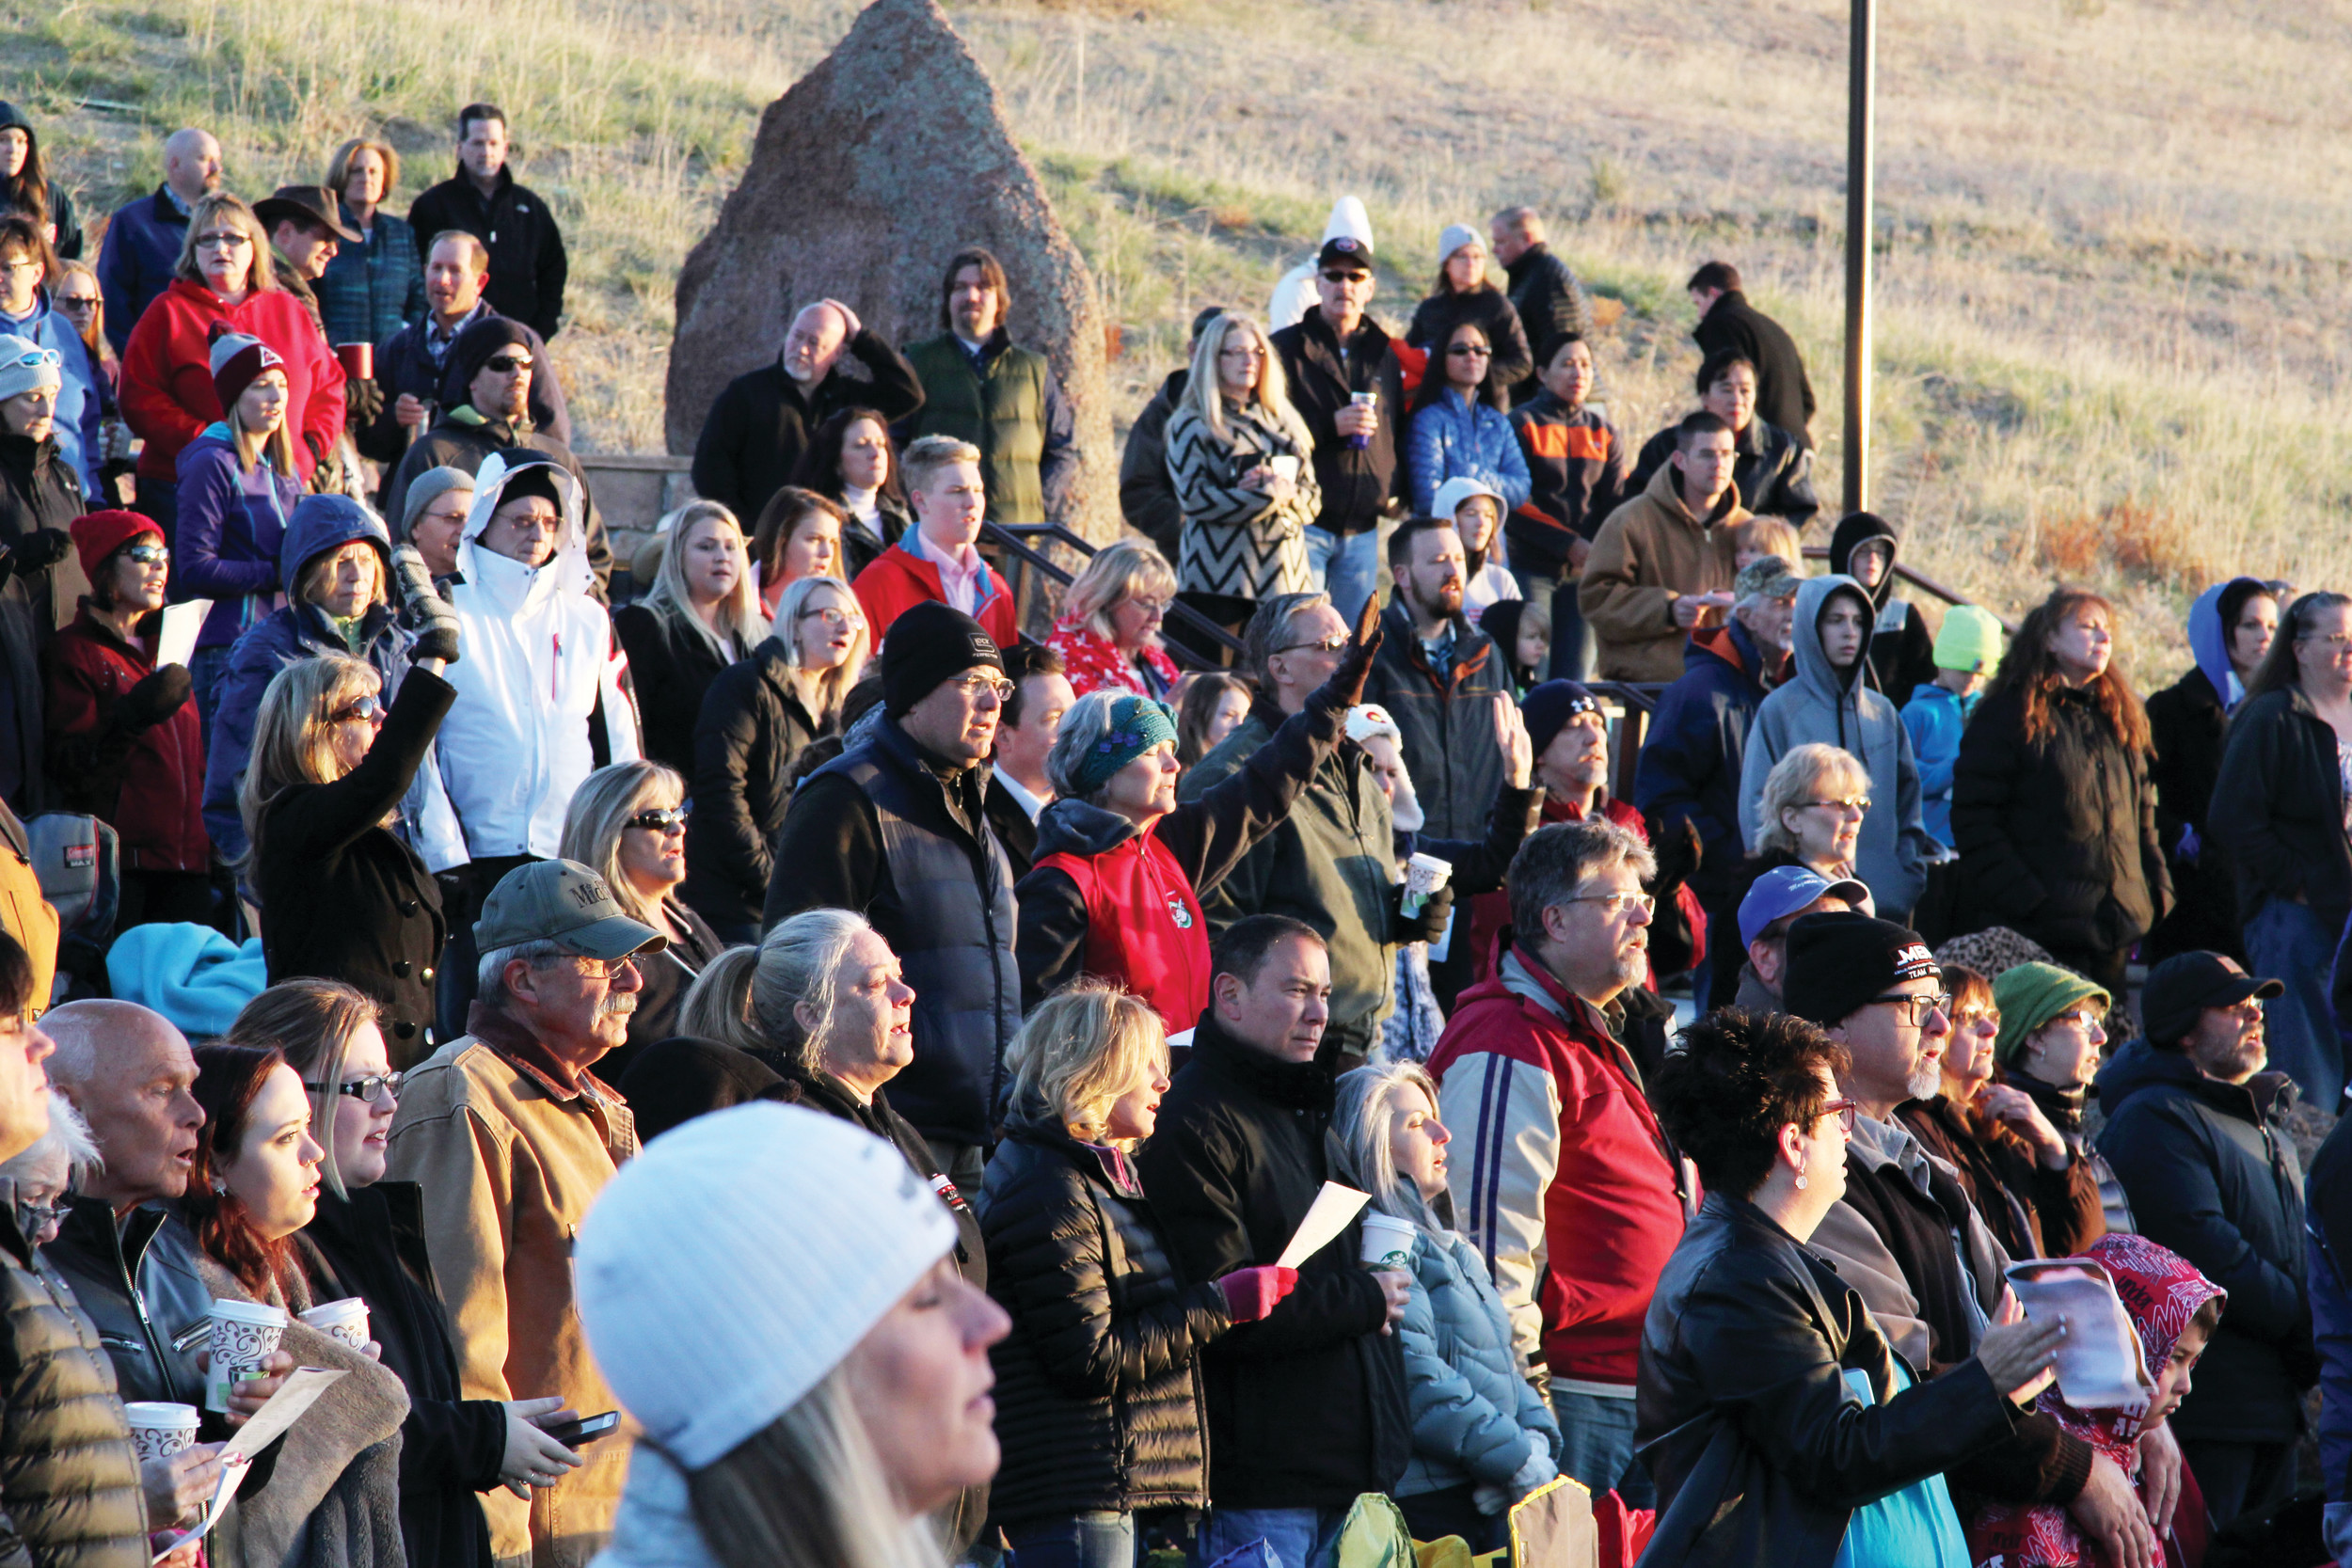 Churches celebrate Easter sunrise services on the beach